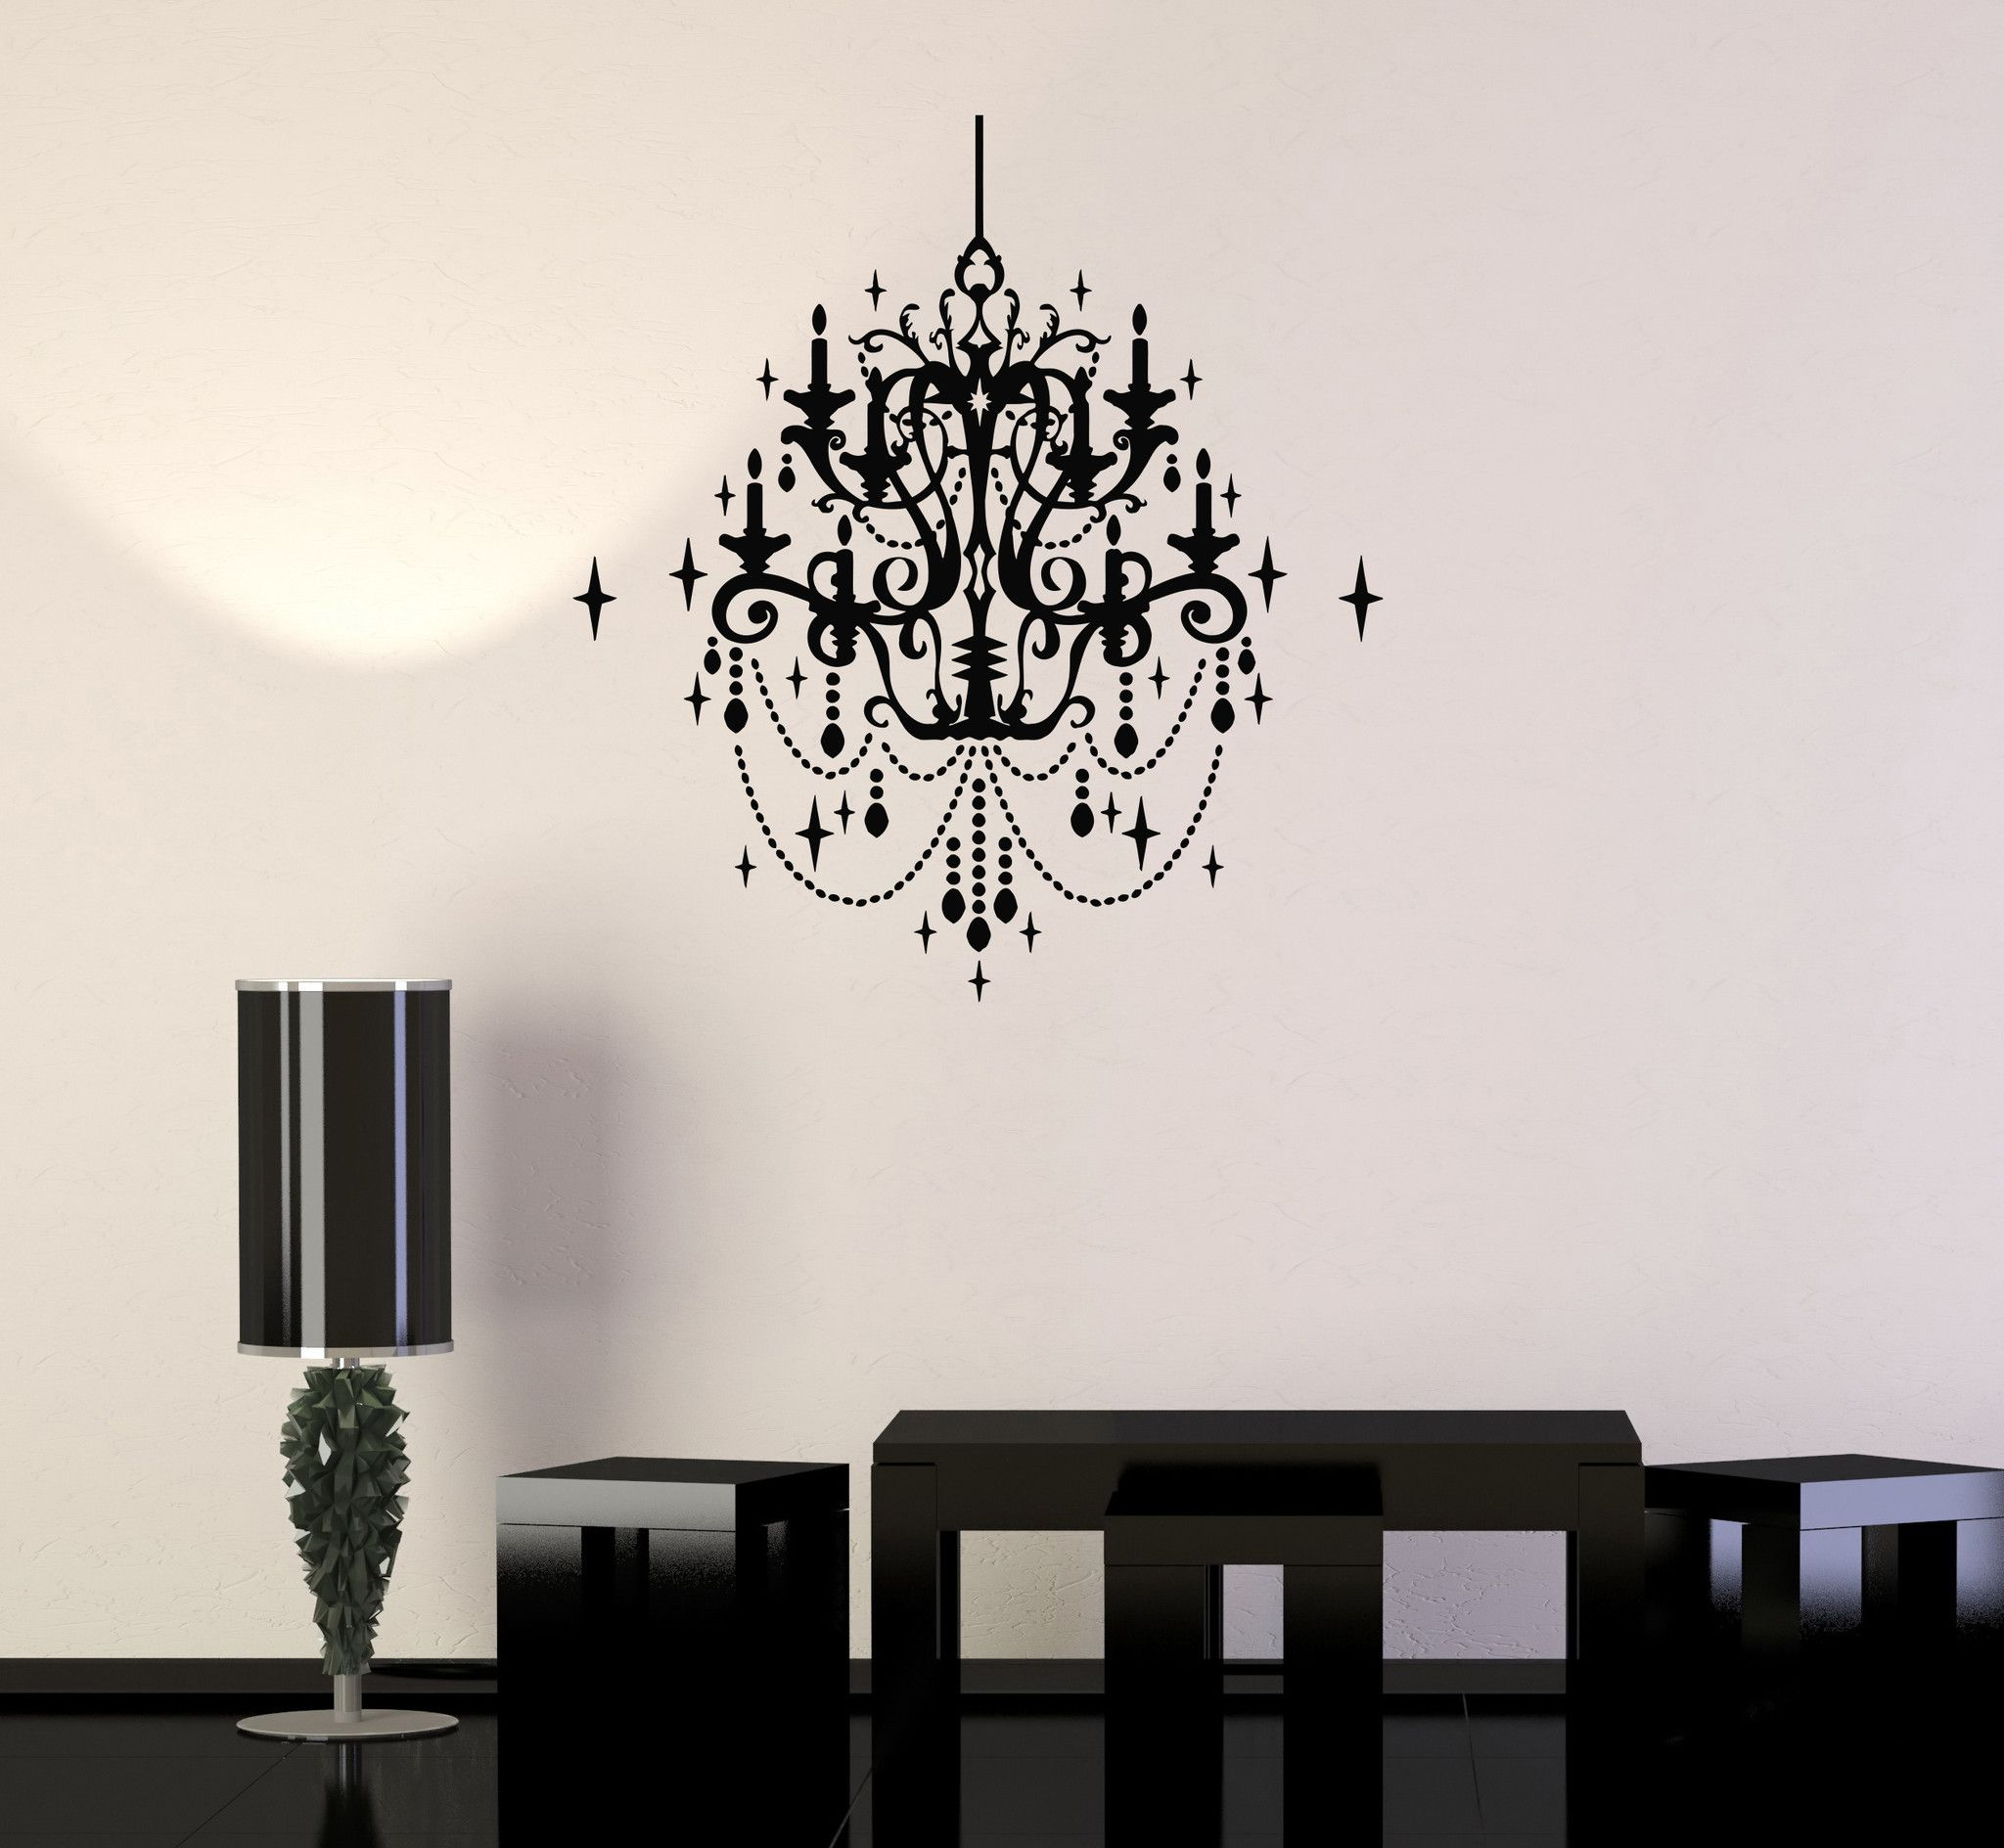 Wall decal vintage chandelier decor lighting decoration vinyl wall decal vintage chandelier decor lighting decoration vinyl stickers ig2845 aloadofball Gallery